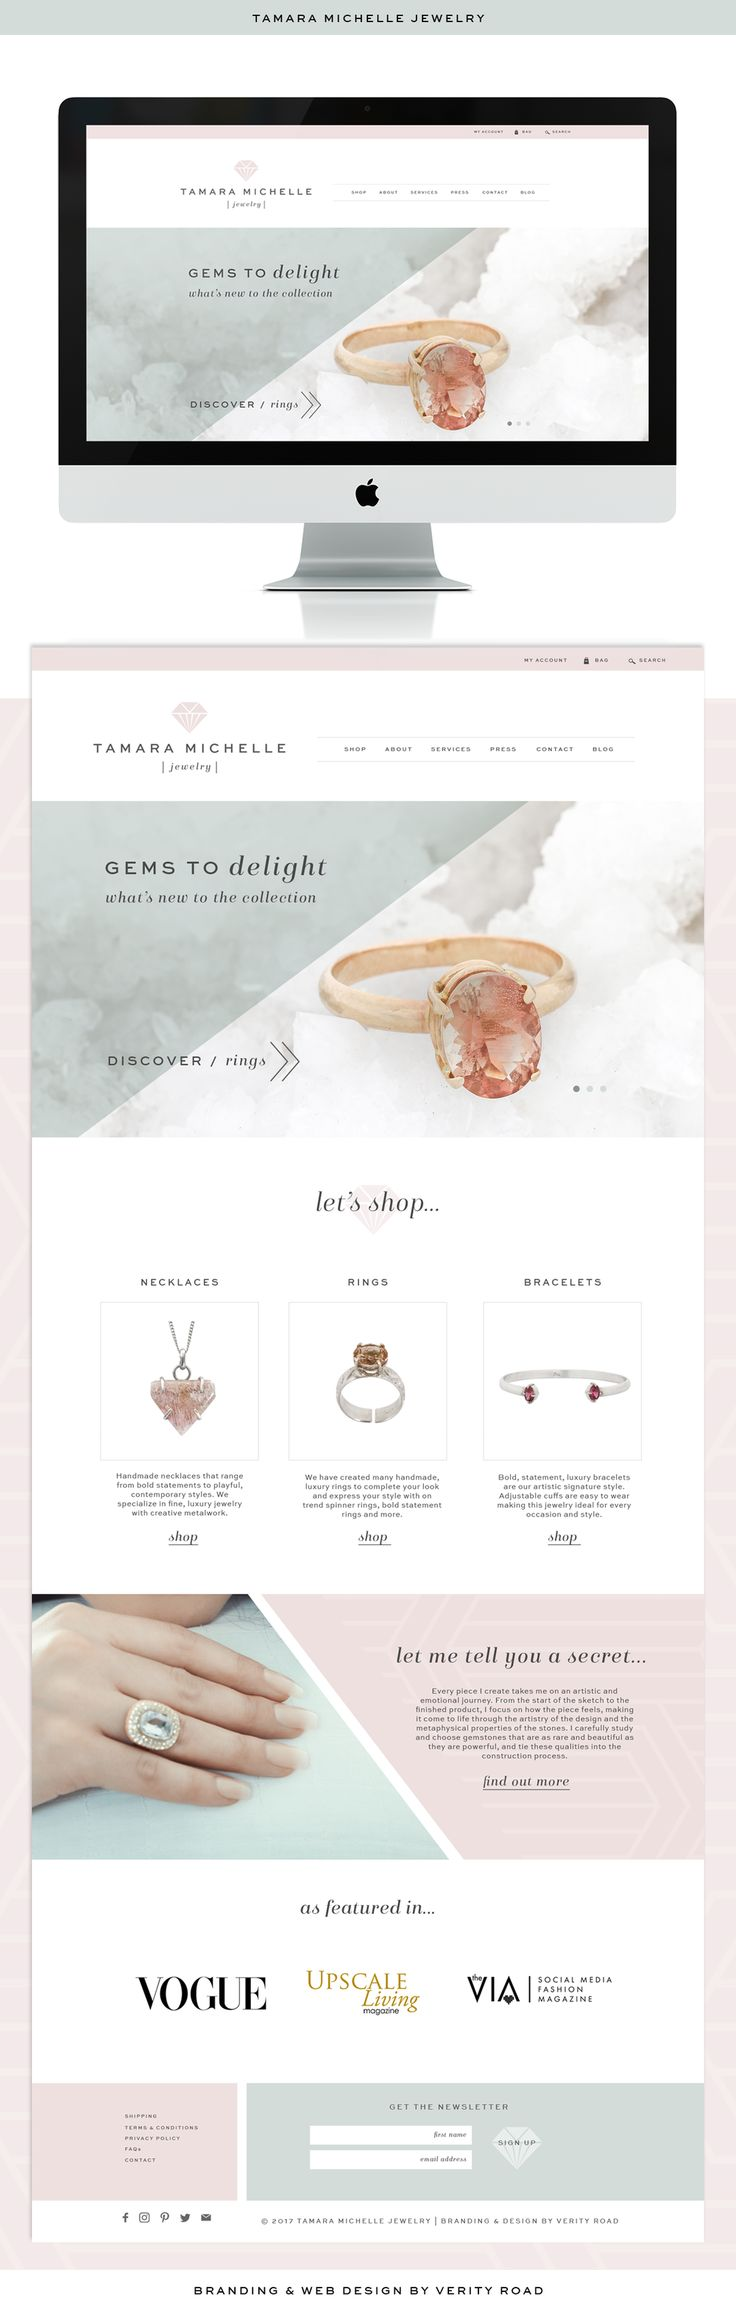 Custom web design, website design for jewelry designer. Jewelry design branding, feminine web design, web design inspiration, feminine website inspiration, custom feminine website for Tamara Michelle Jewelry. Luxury feminine branding and custom Wordpress website. Custom e-commerce. Pastel color palette. E-commerce inspiration. Gemstone jewelry, brand photography, brand photoshoot, female entrepreneur, business owner, logo design, logo inspiration, jewellery designer.